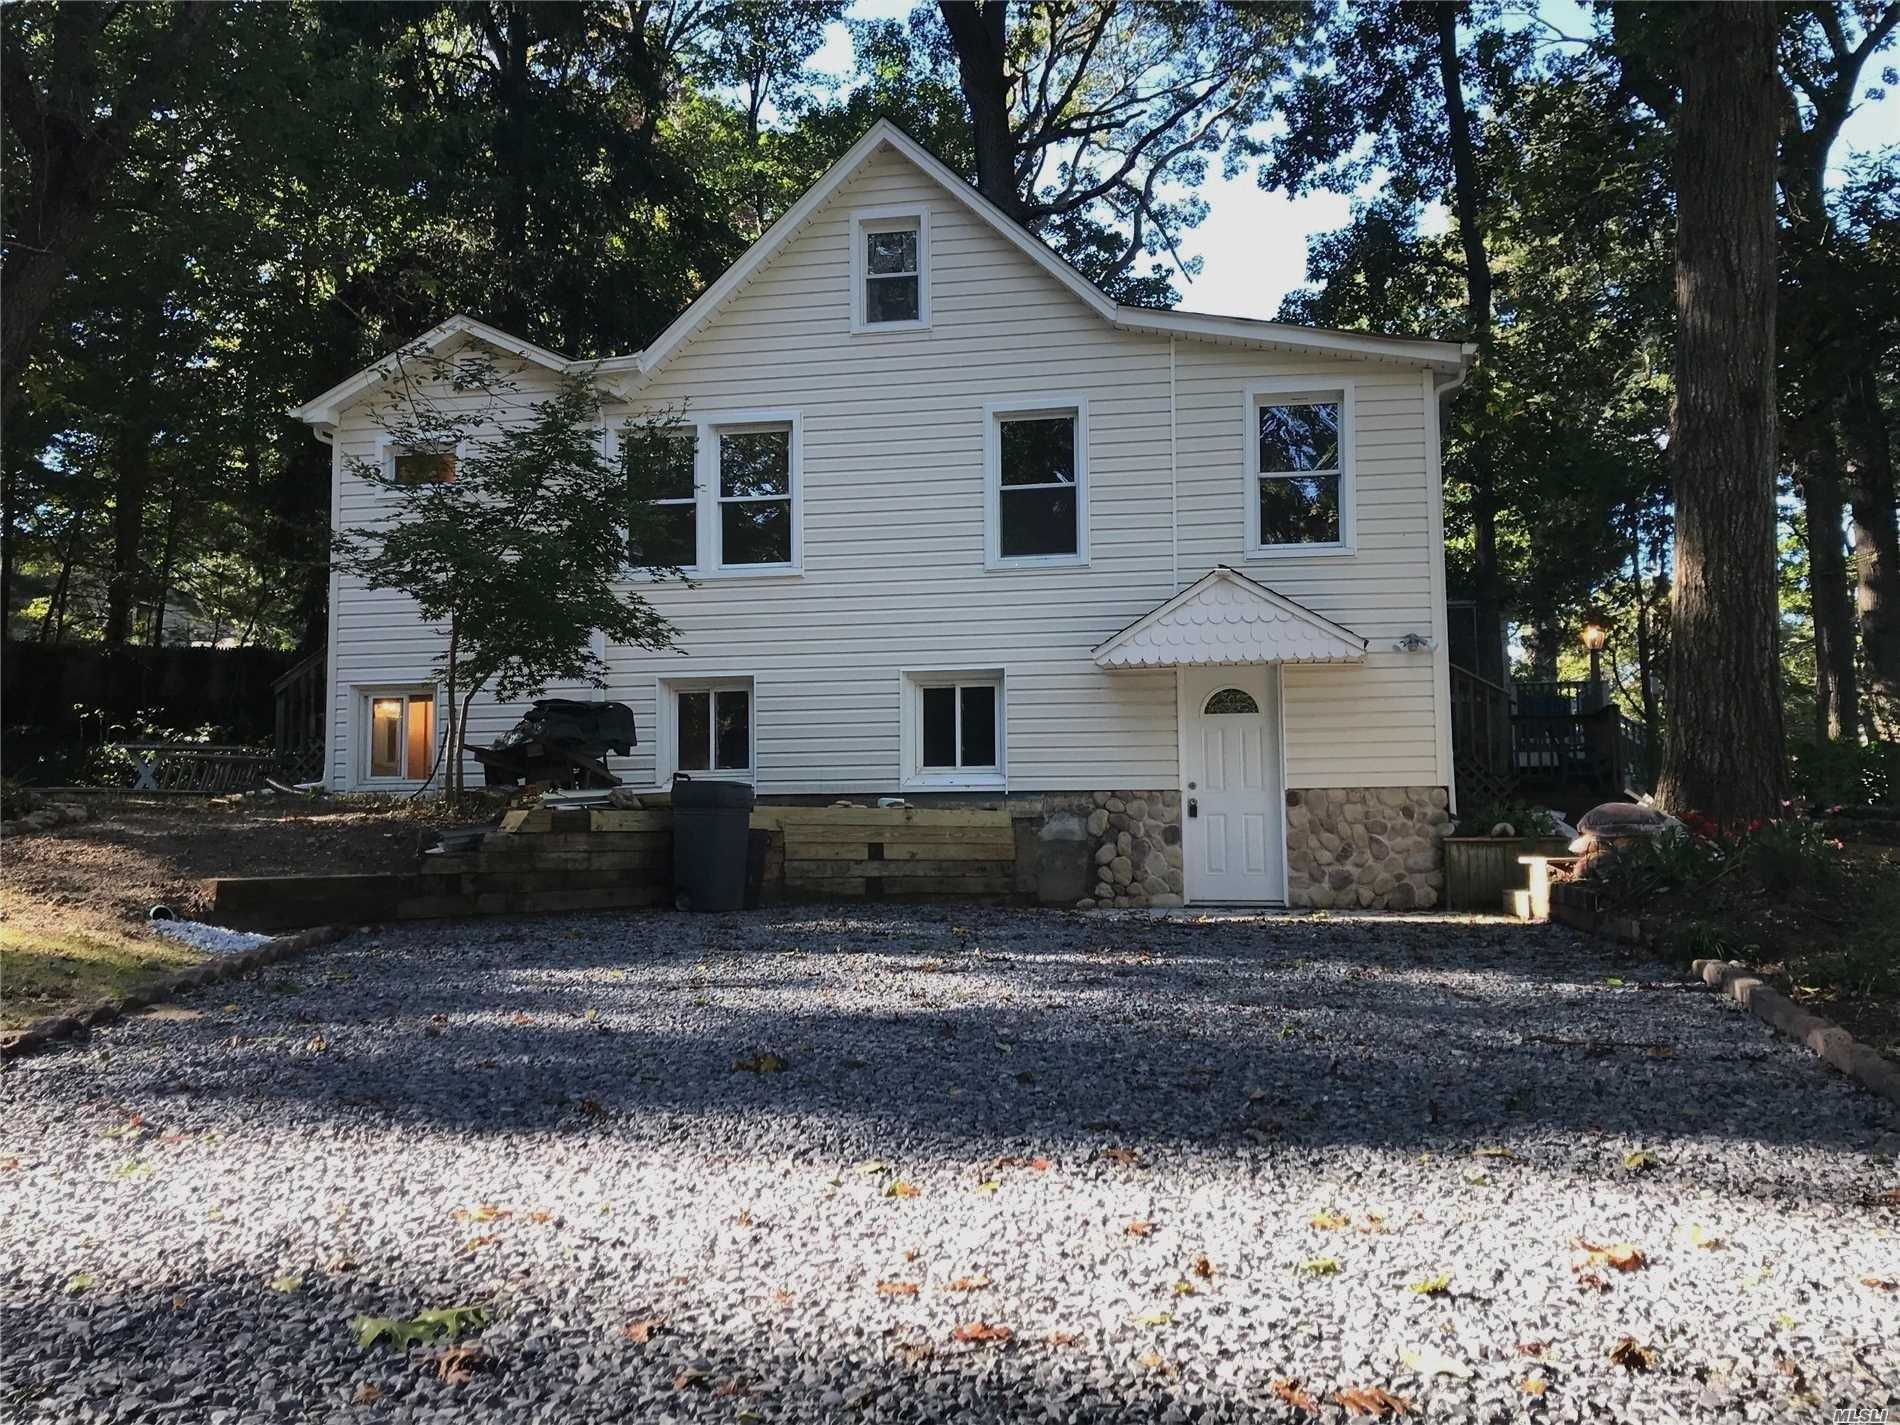 Newly Renovated Home With New Kitchen, Two New Bathrooms, New Flooring Throughout, New Siding And Windows. Large Driveway For Multiple Cars. One Block From Private Beach. Seller Will Pay First Year Beach Rights $425